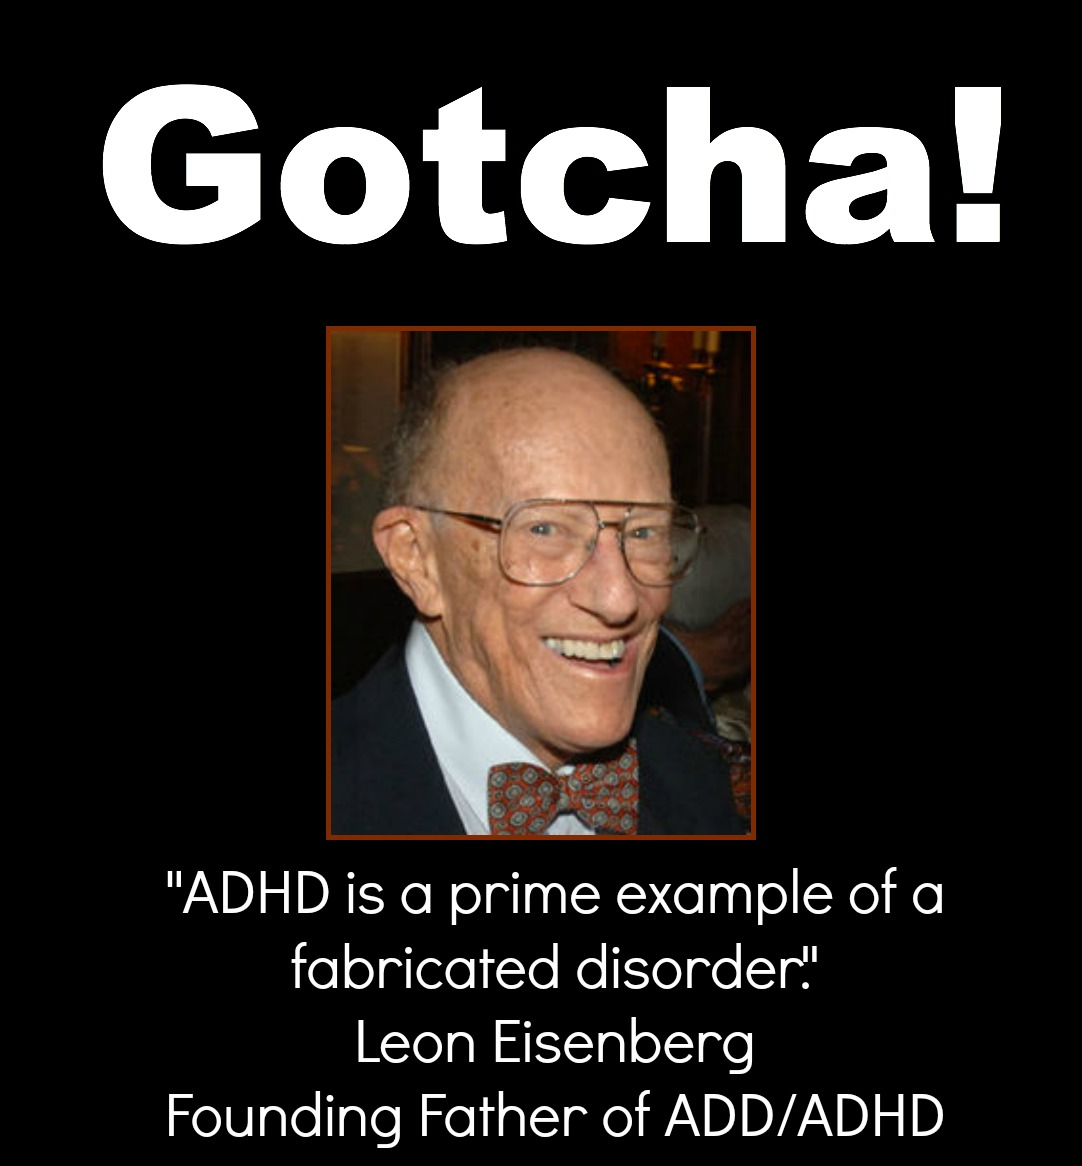 S-a gasit leac contra ADHD